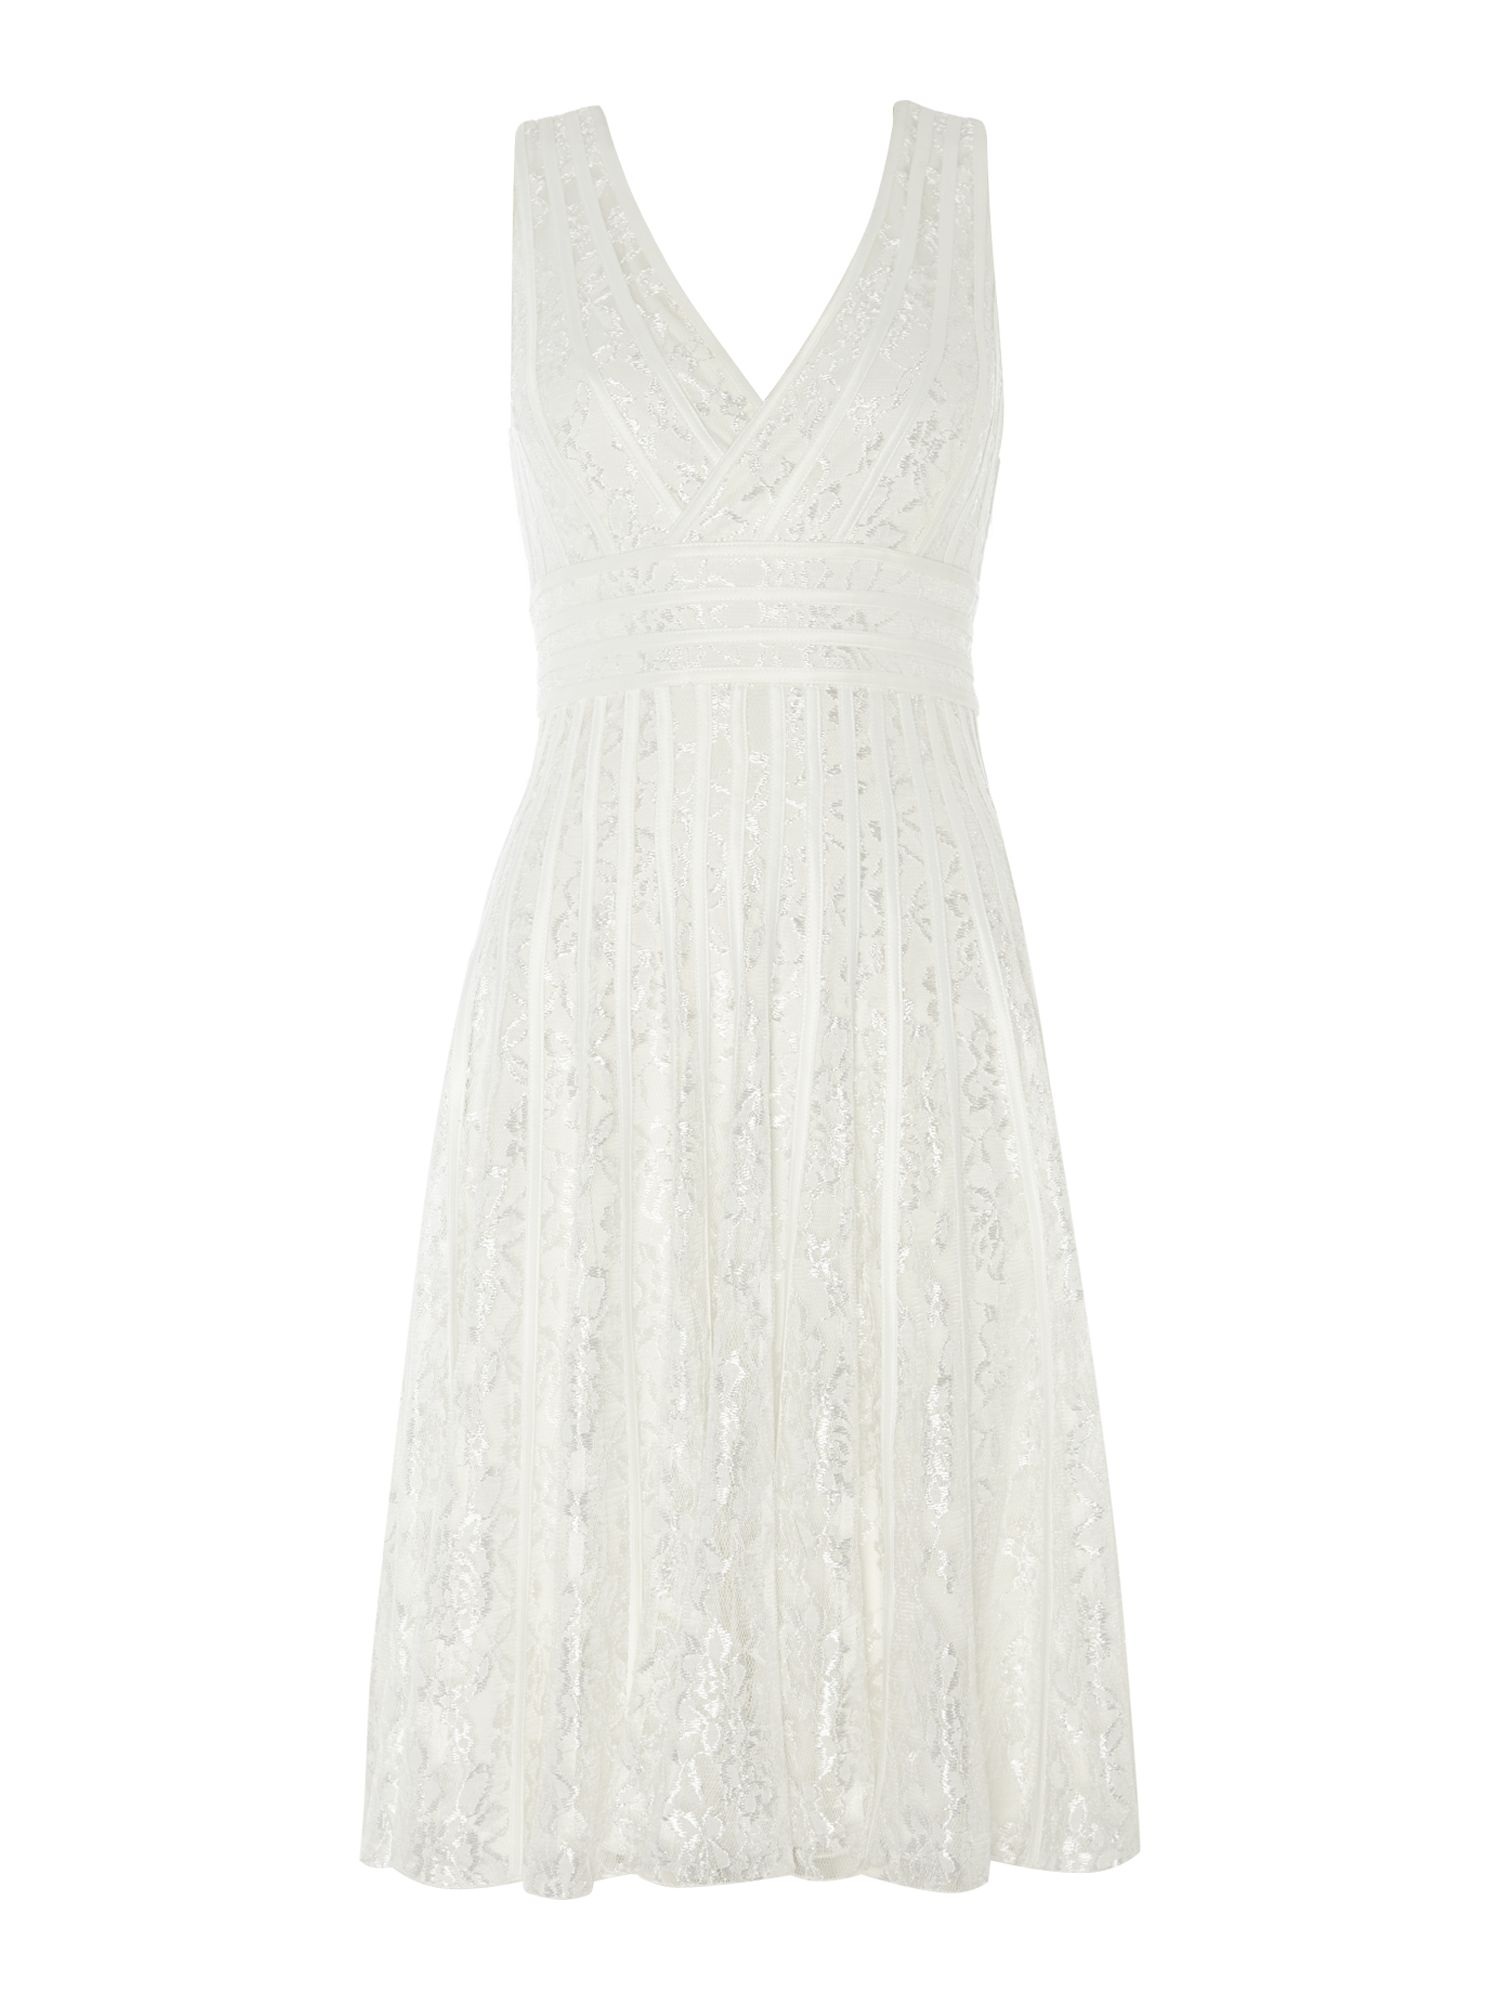 V-neck lace ribbon dress